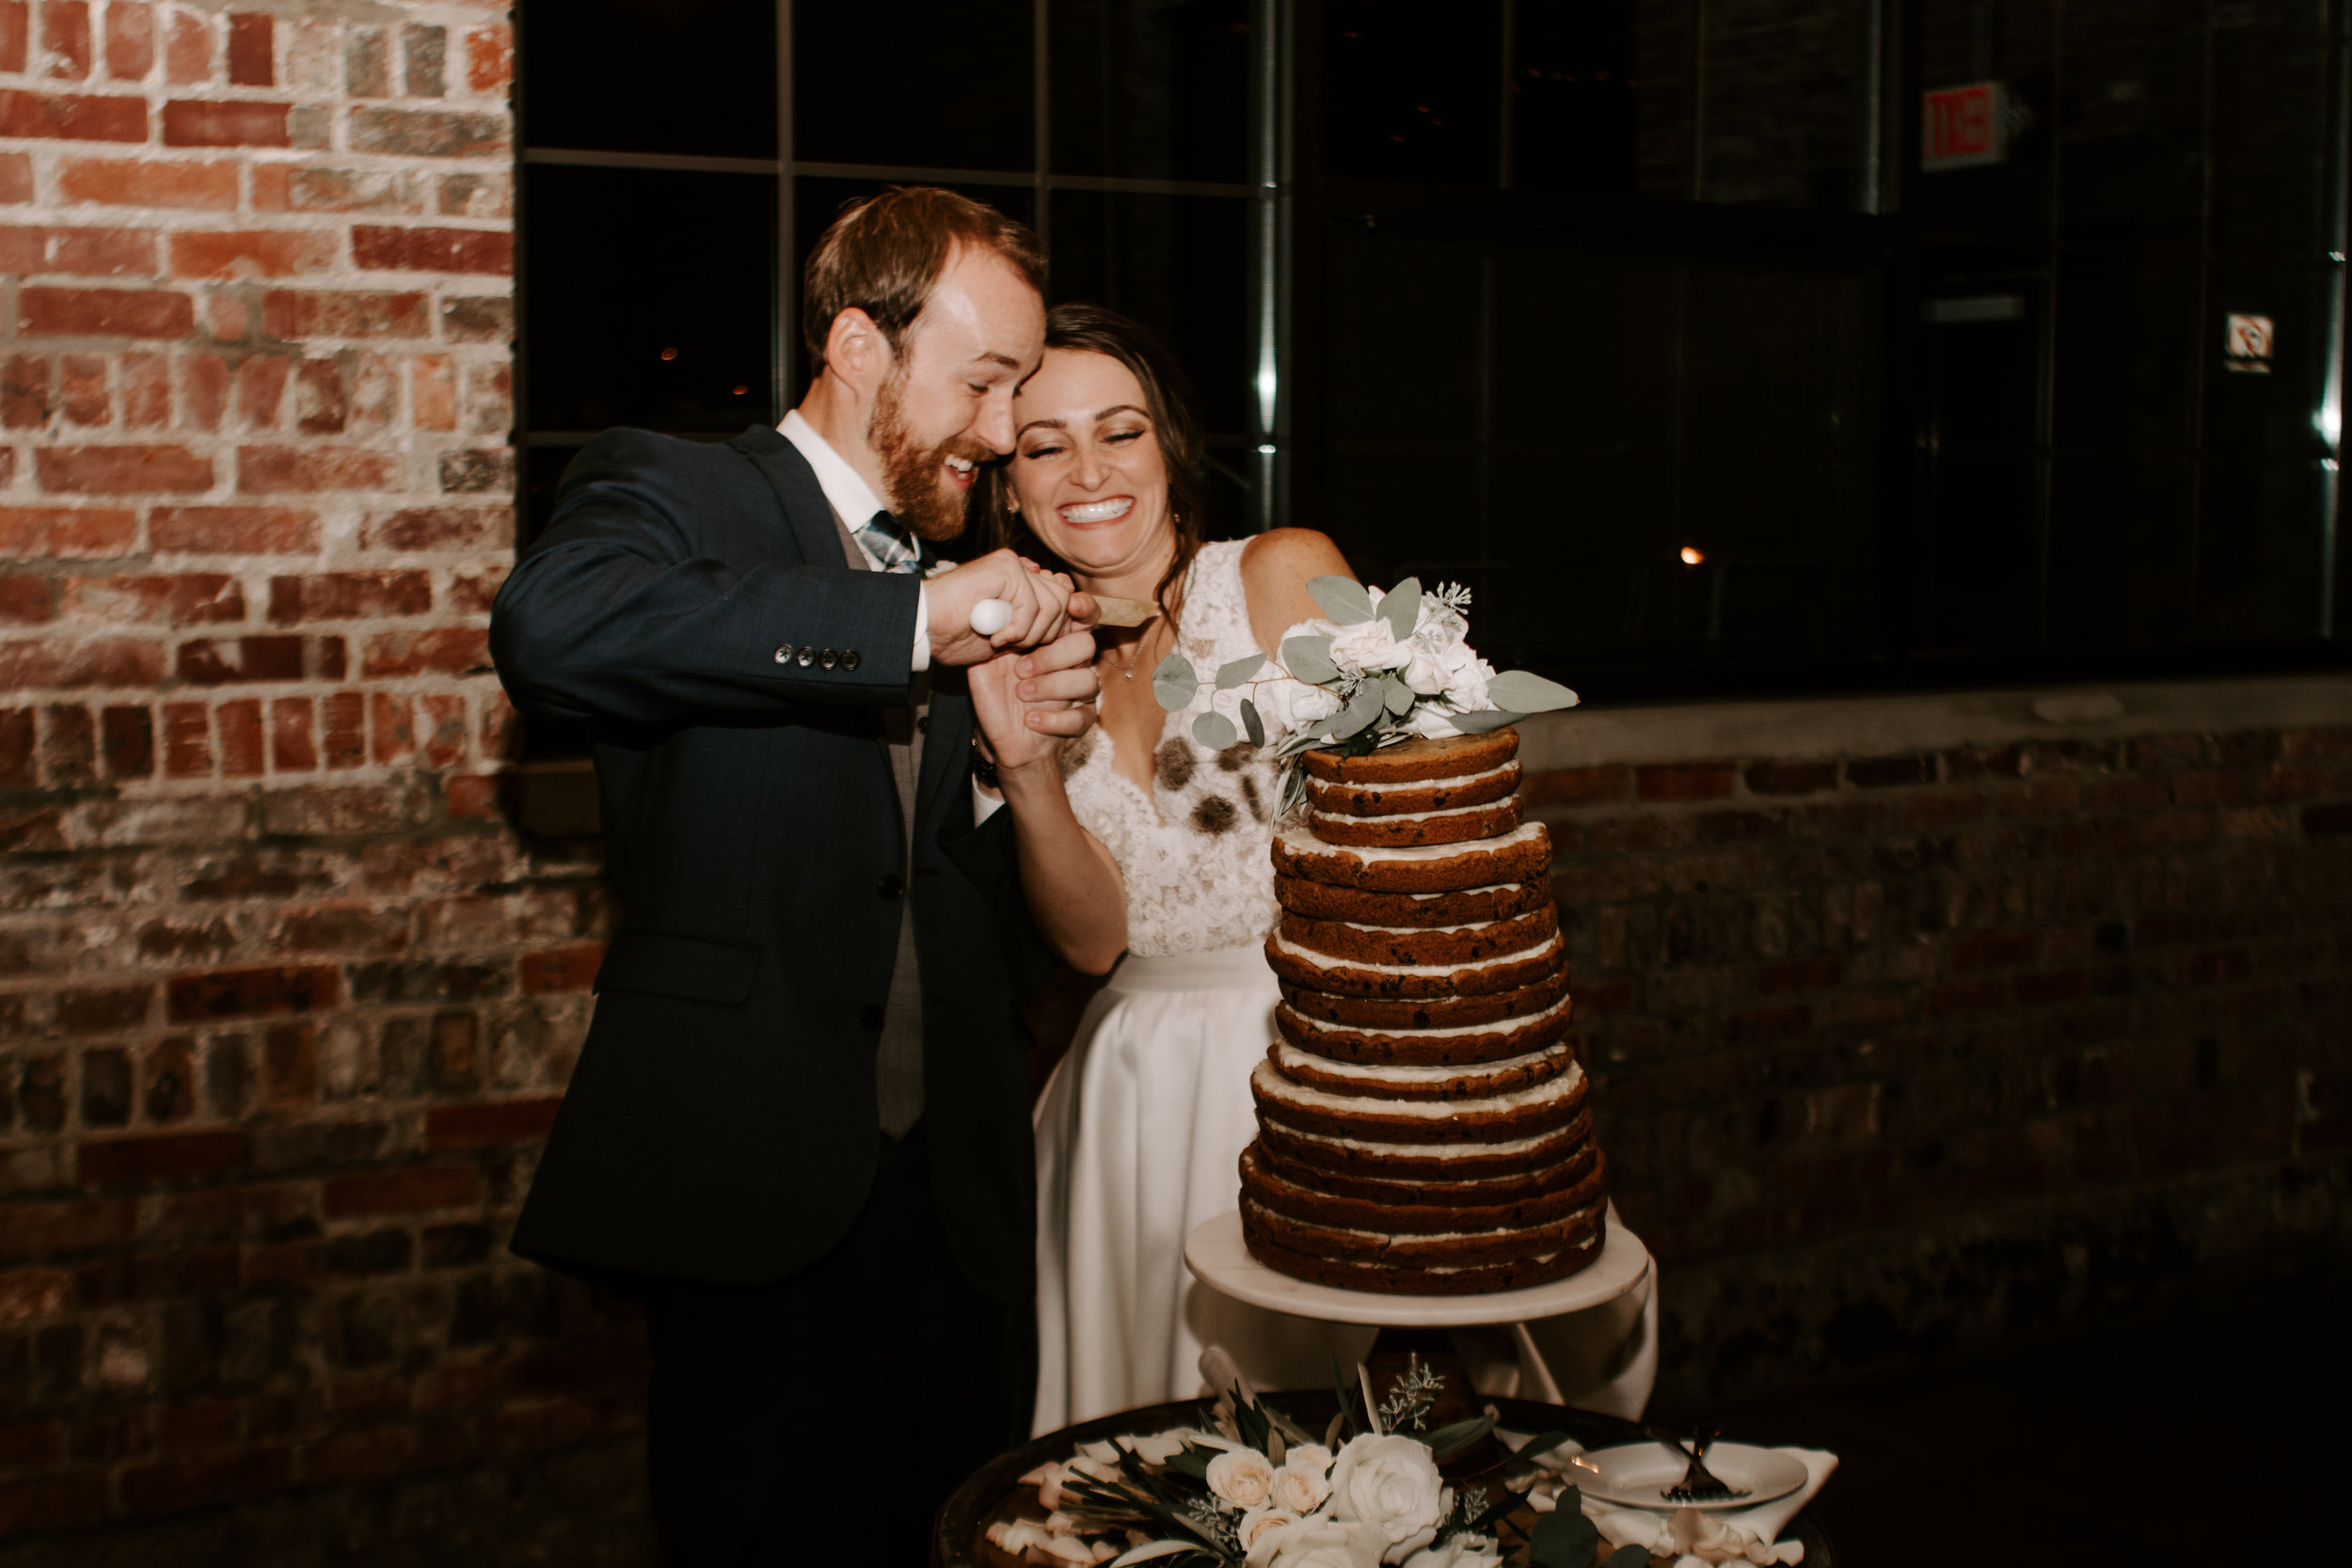 Wedding Cake Reception Photo by Kerri Carlquist Photography